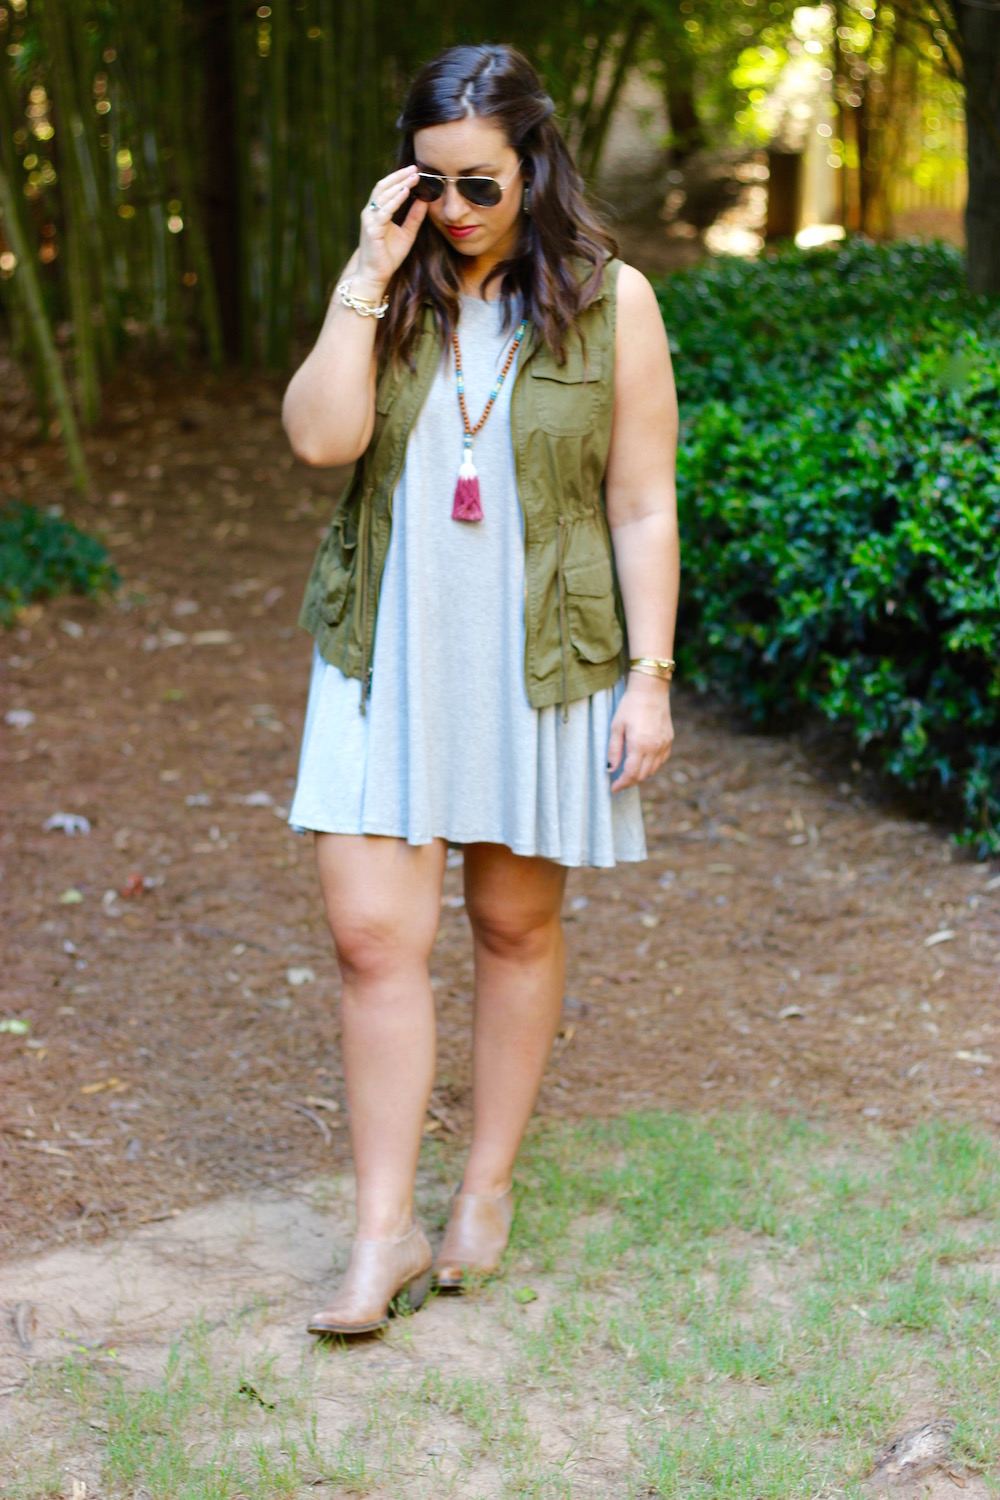 Fall Vest and Dress | Just Peachy Blog